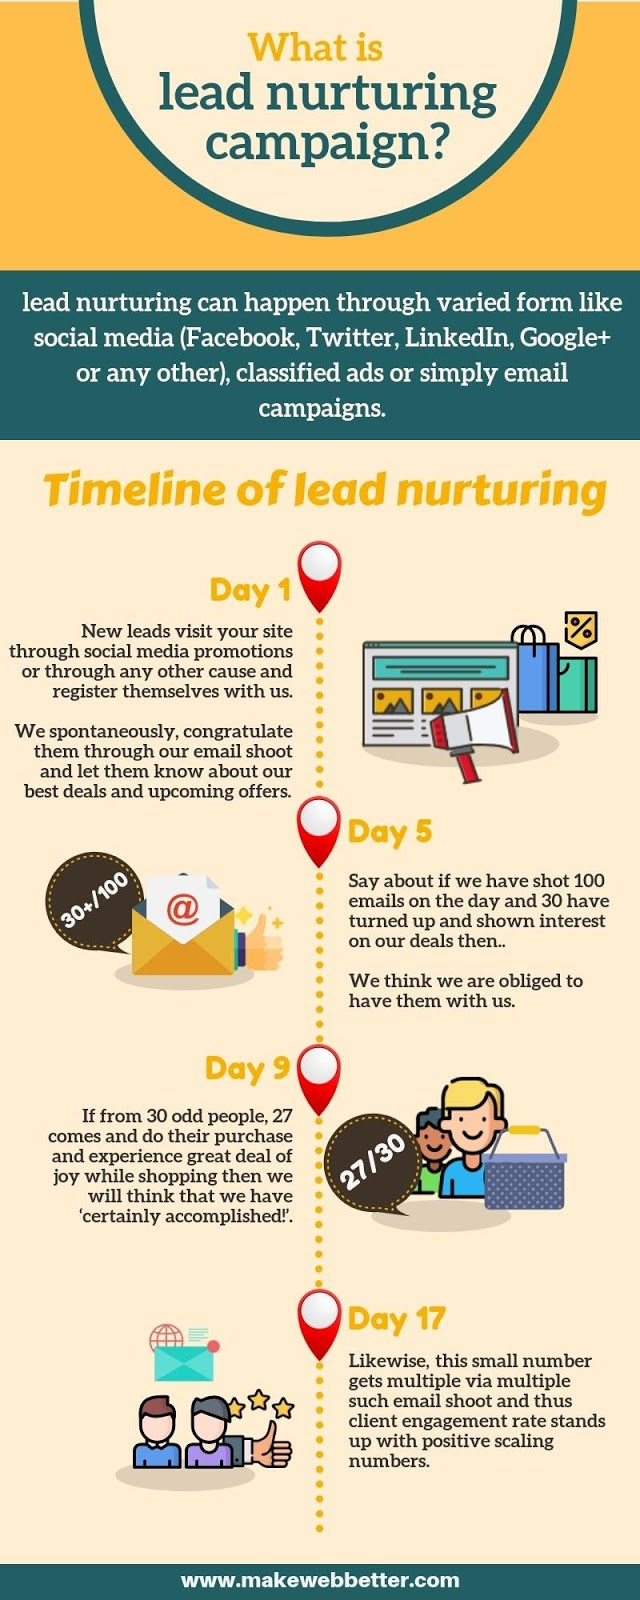 How Does A Lead Nurturing Campaign Work